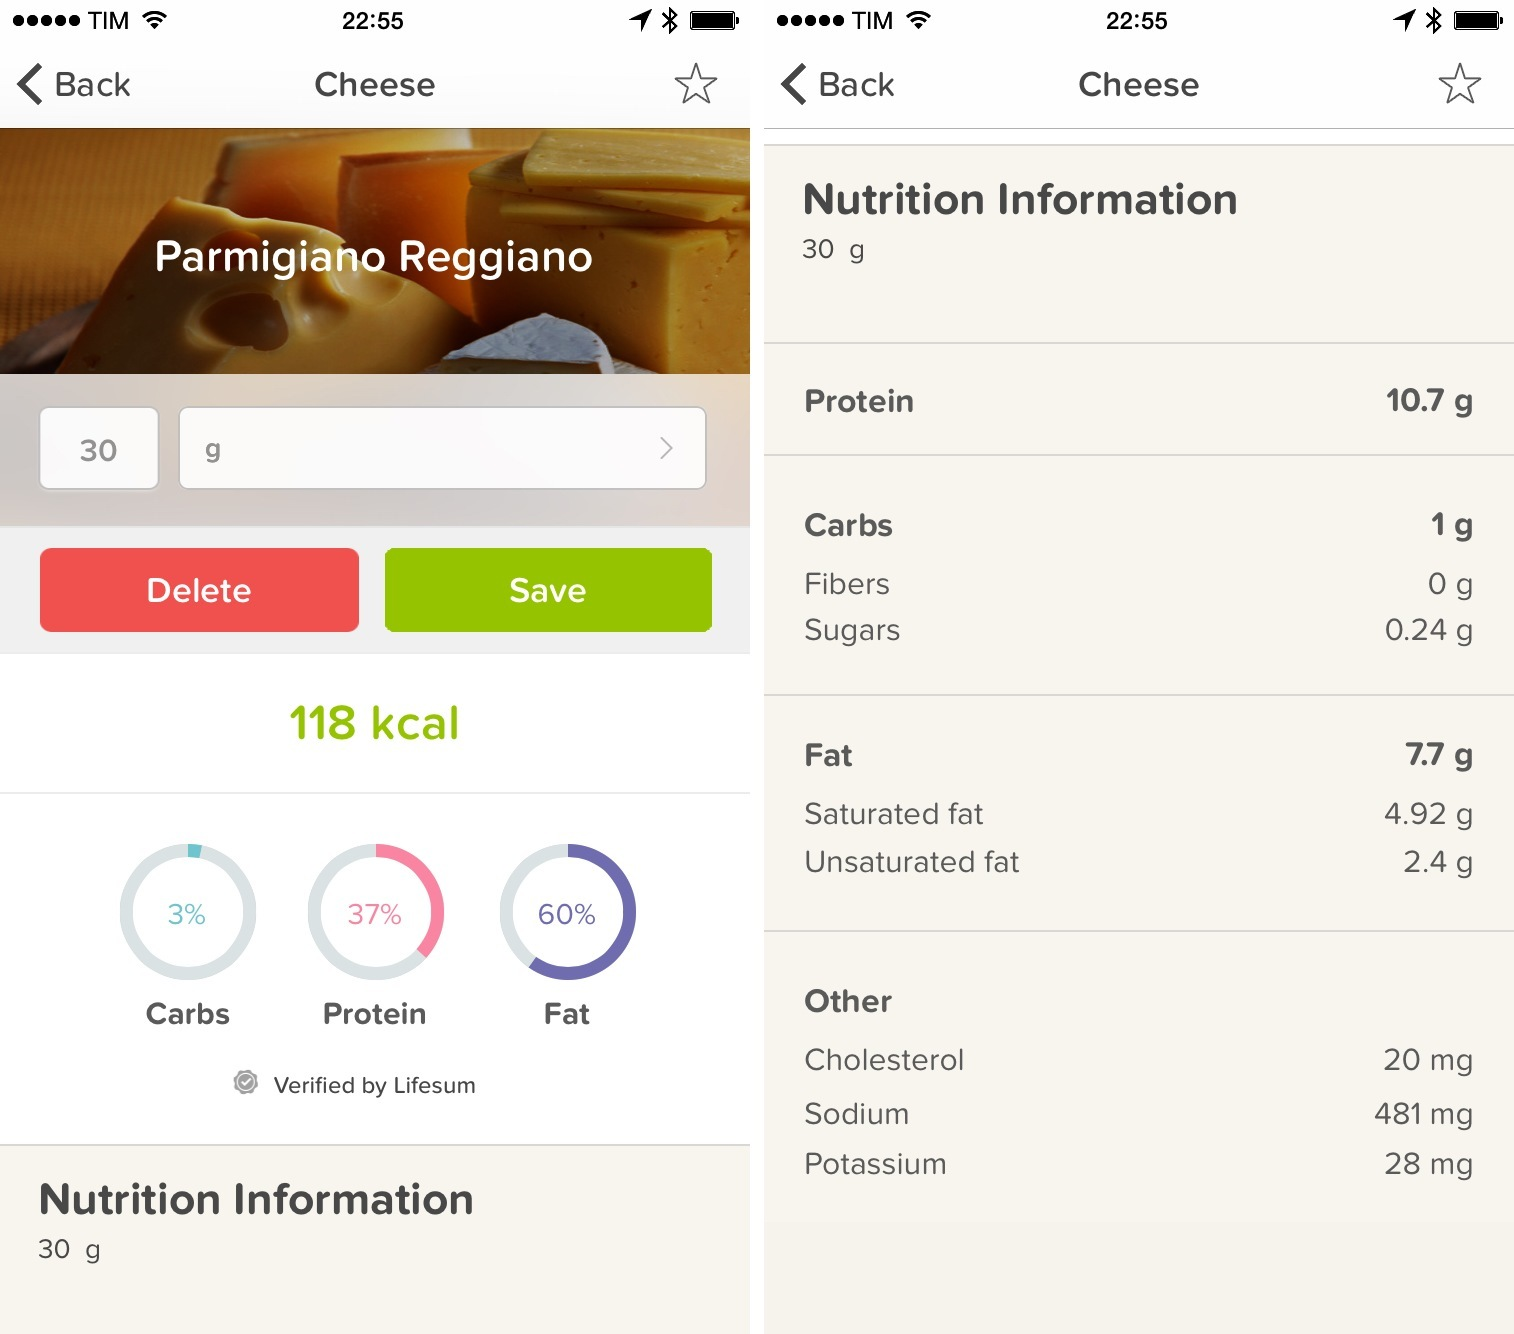 Nutrition information is often verified by Lifesum itself.